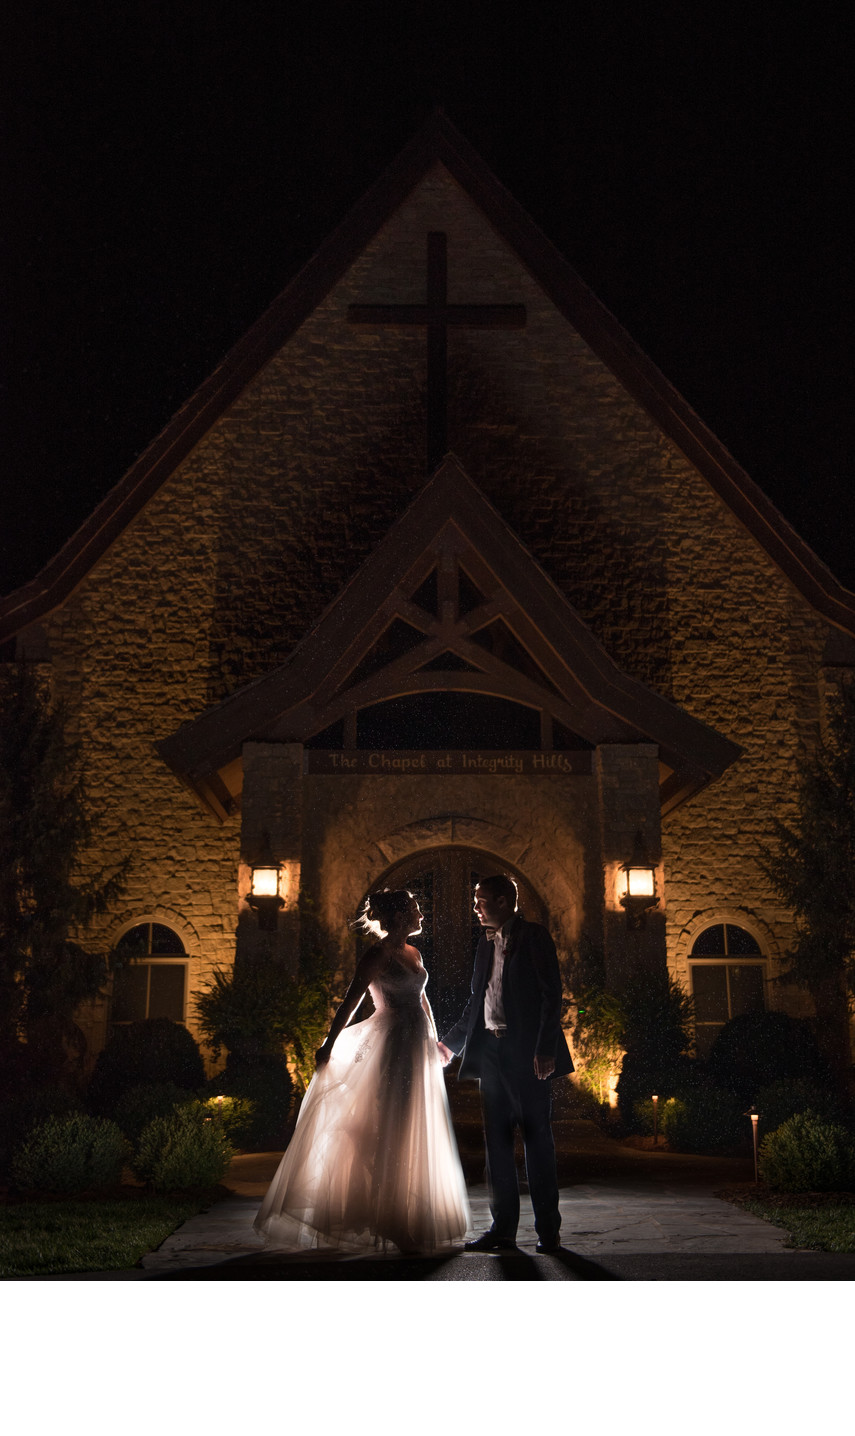 Nighttime Wedding Photos at Integrity Hills